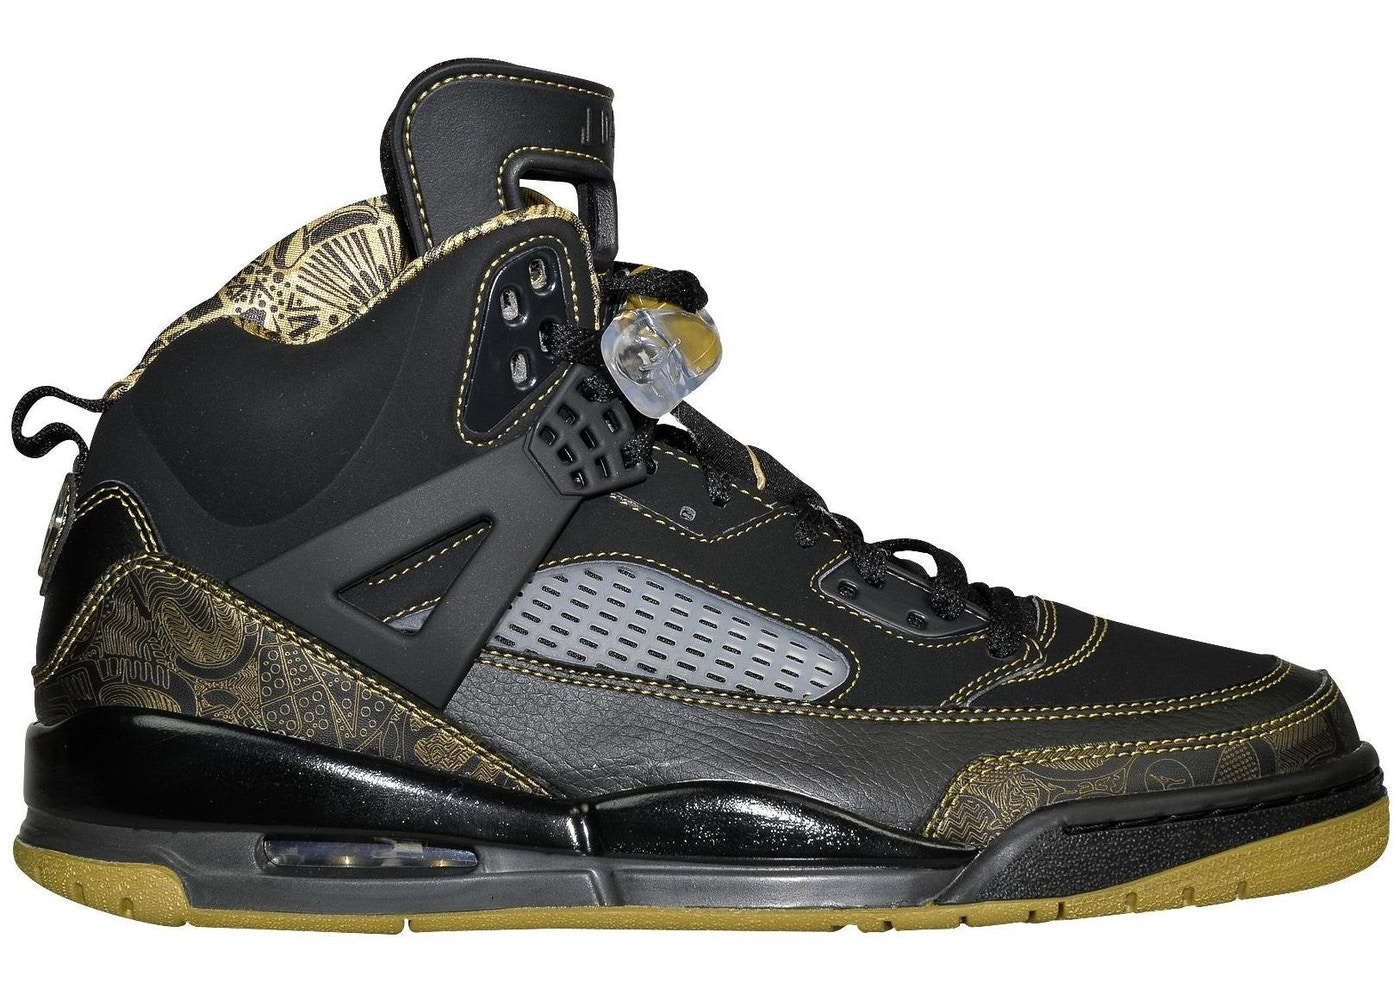 1f9aa963553f Air Jordan Spizike Shoes - Last Sale